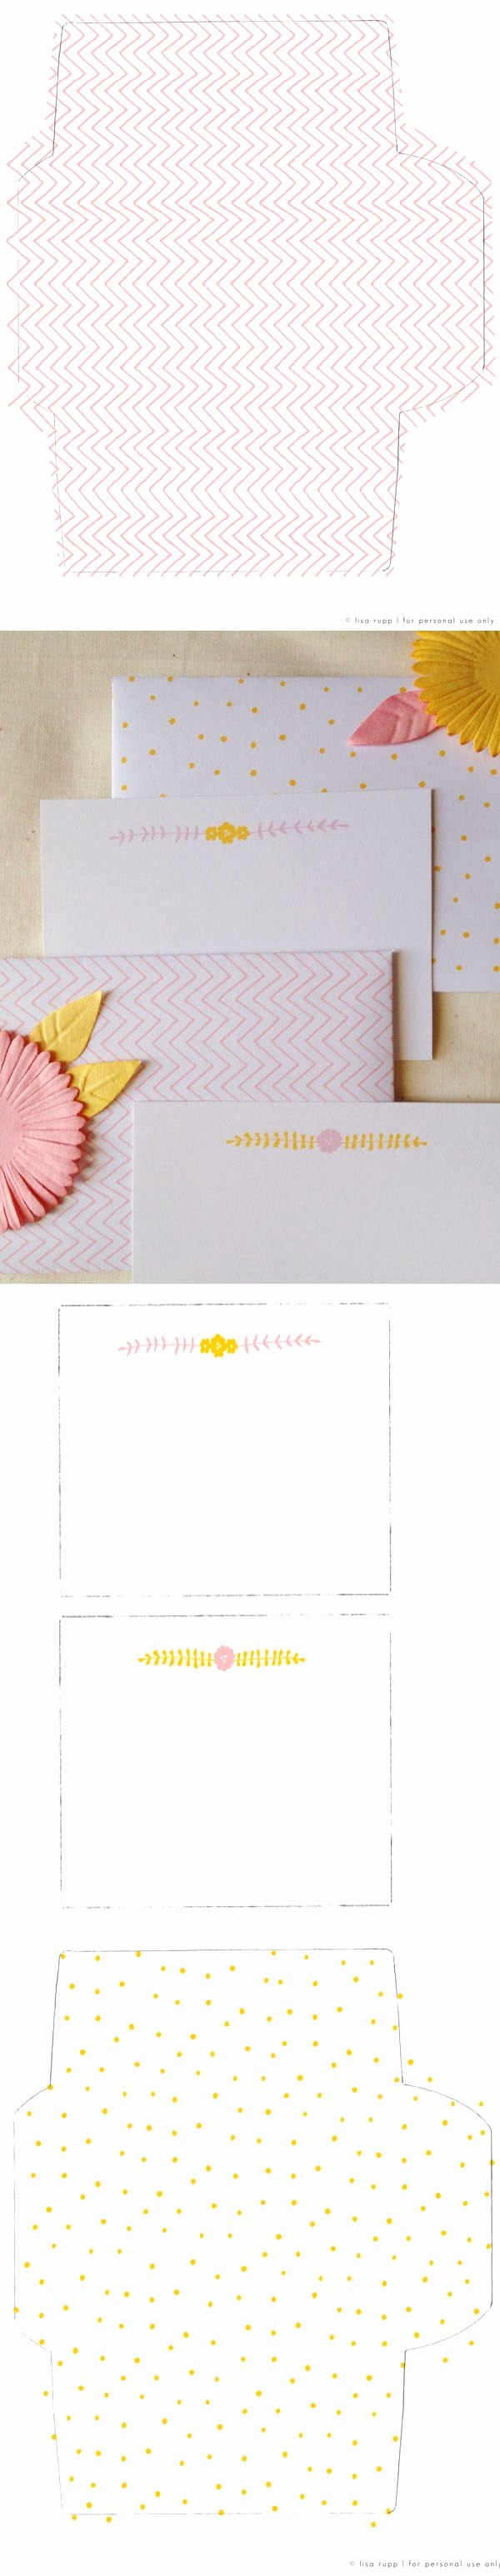 Paper Source Templates Place Cards – Emelinespace In Paper Source Templates Place Cards